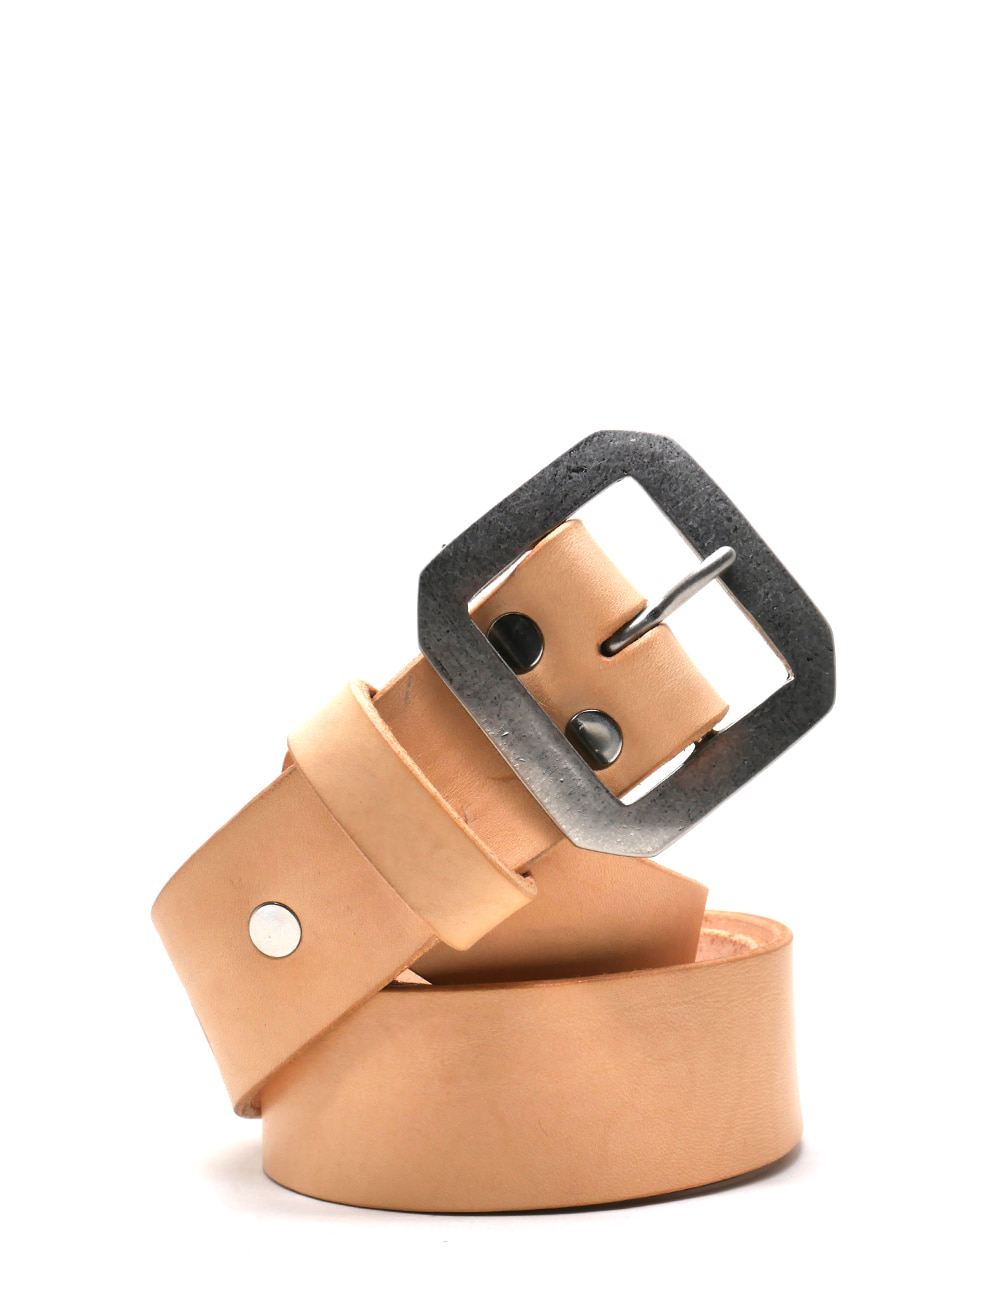 [LEATHER SMITH]  compulsory single belt(beige&silver)